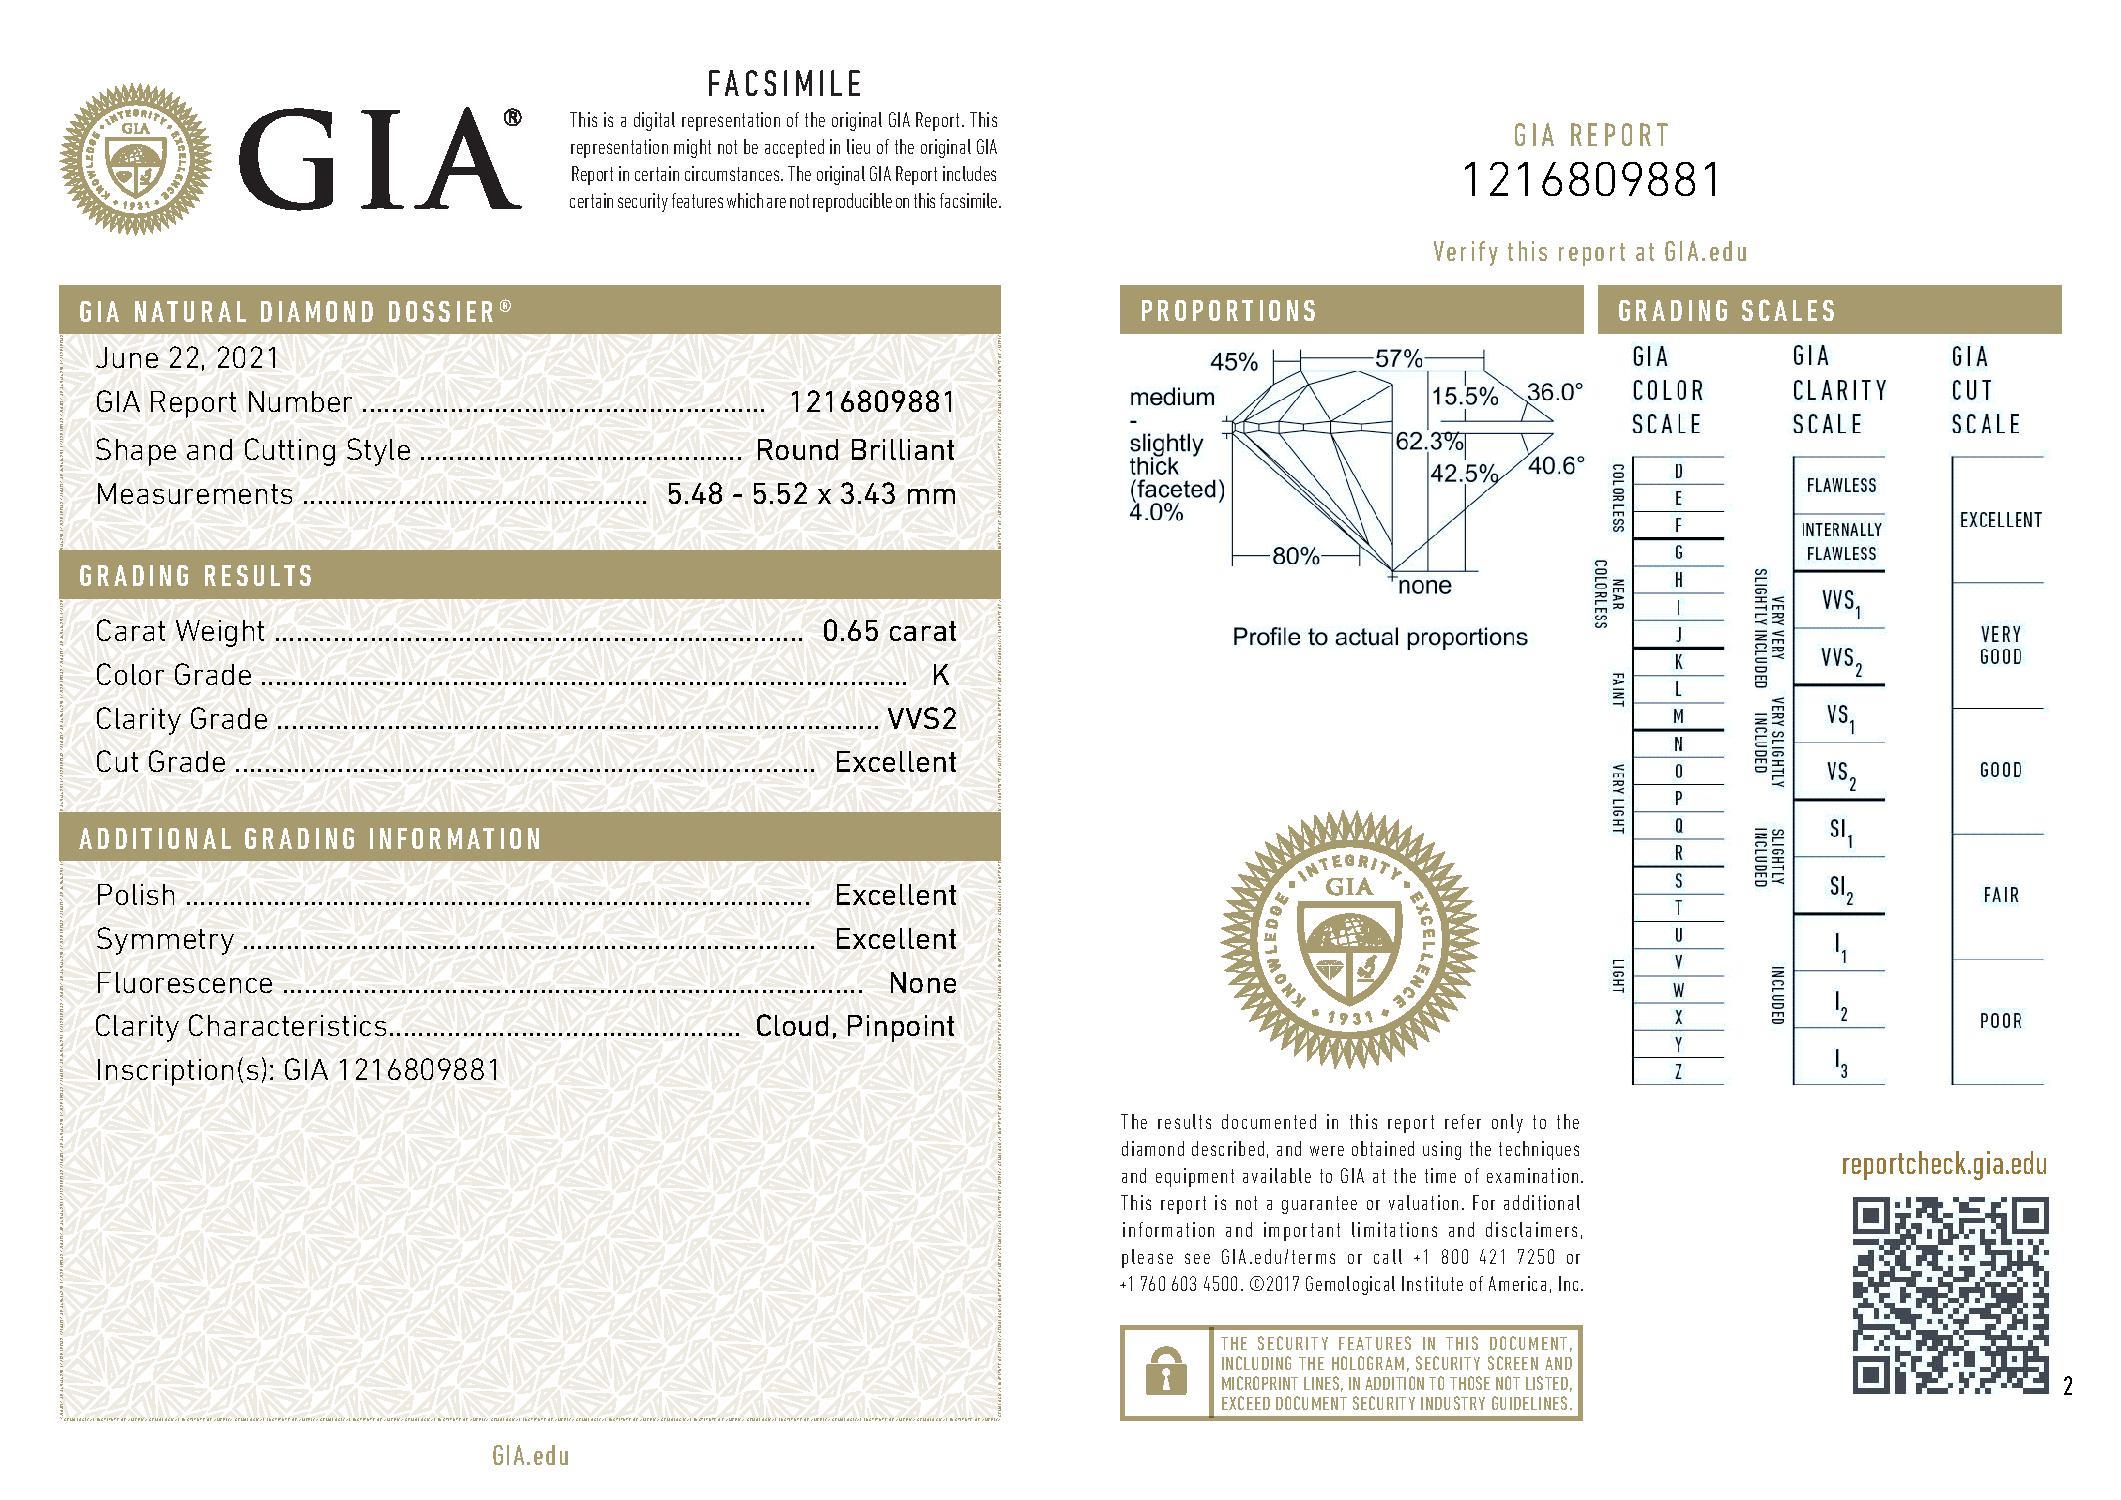 This is a 0.65 carat round shape, K color, VVS2 clarity natural diamond accompanied by a GIA grading report.